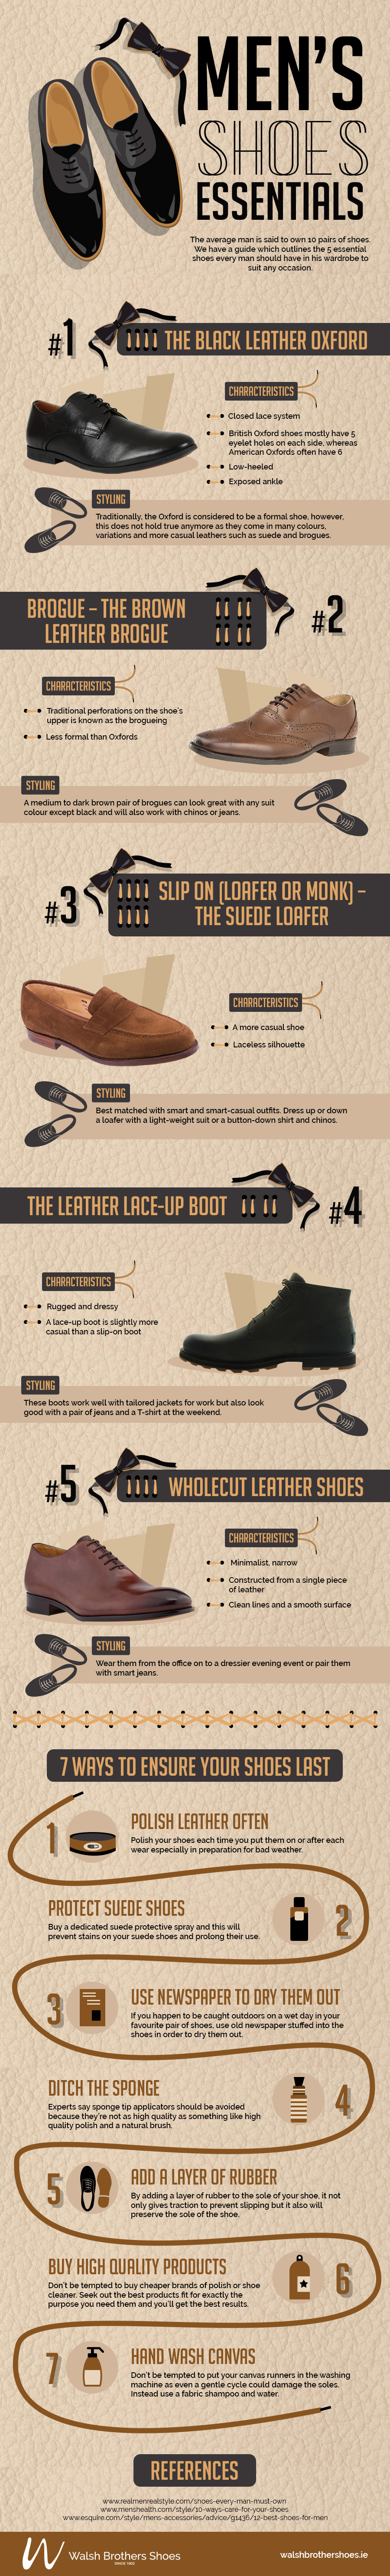 mens-shoes-essentials-infographic-walsh-brothers